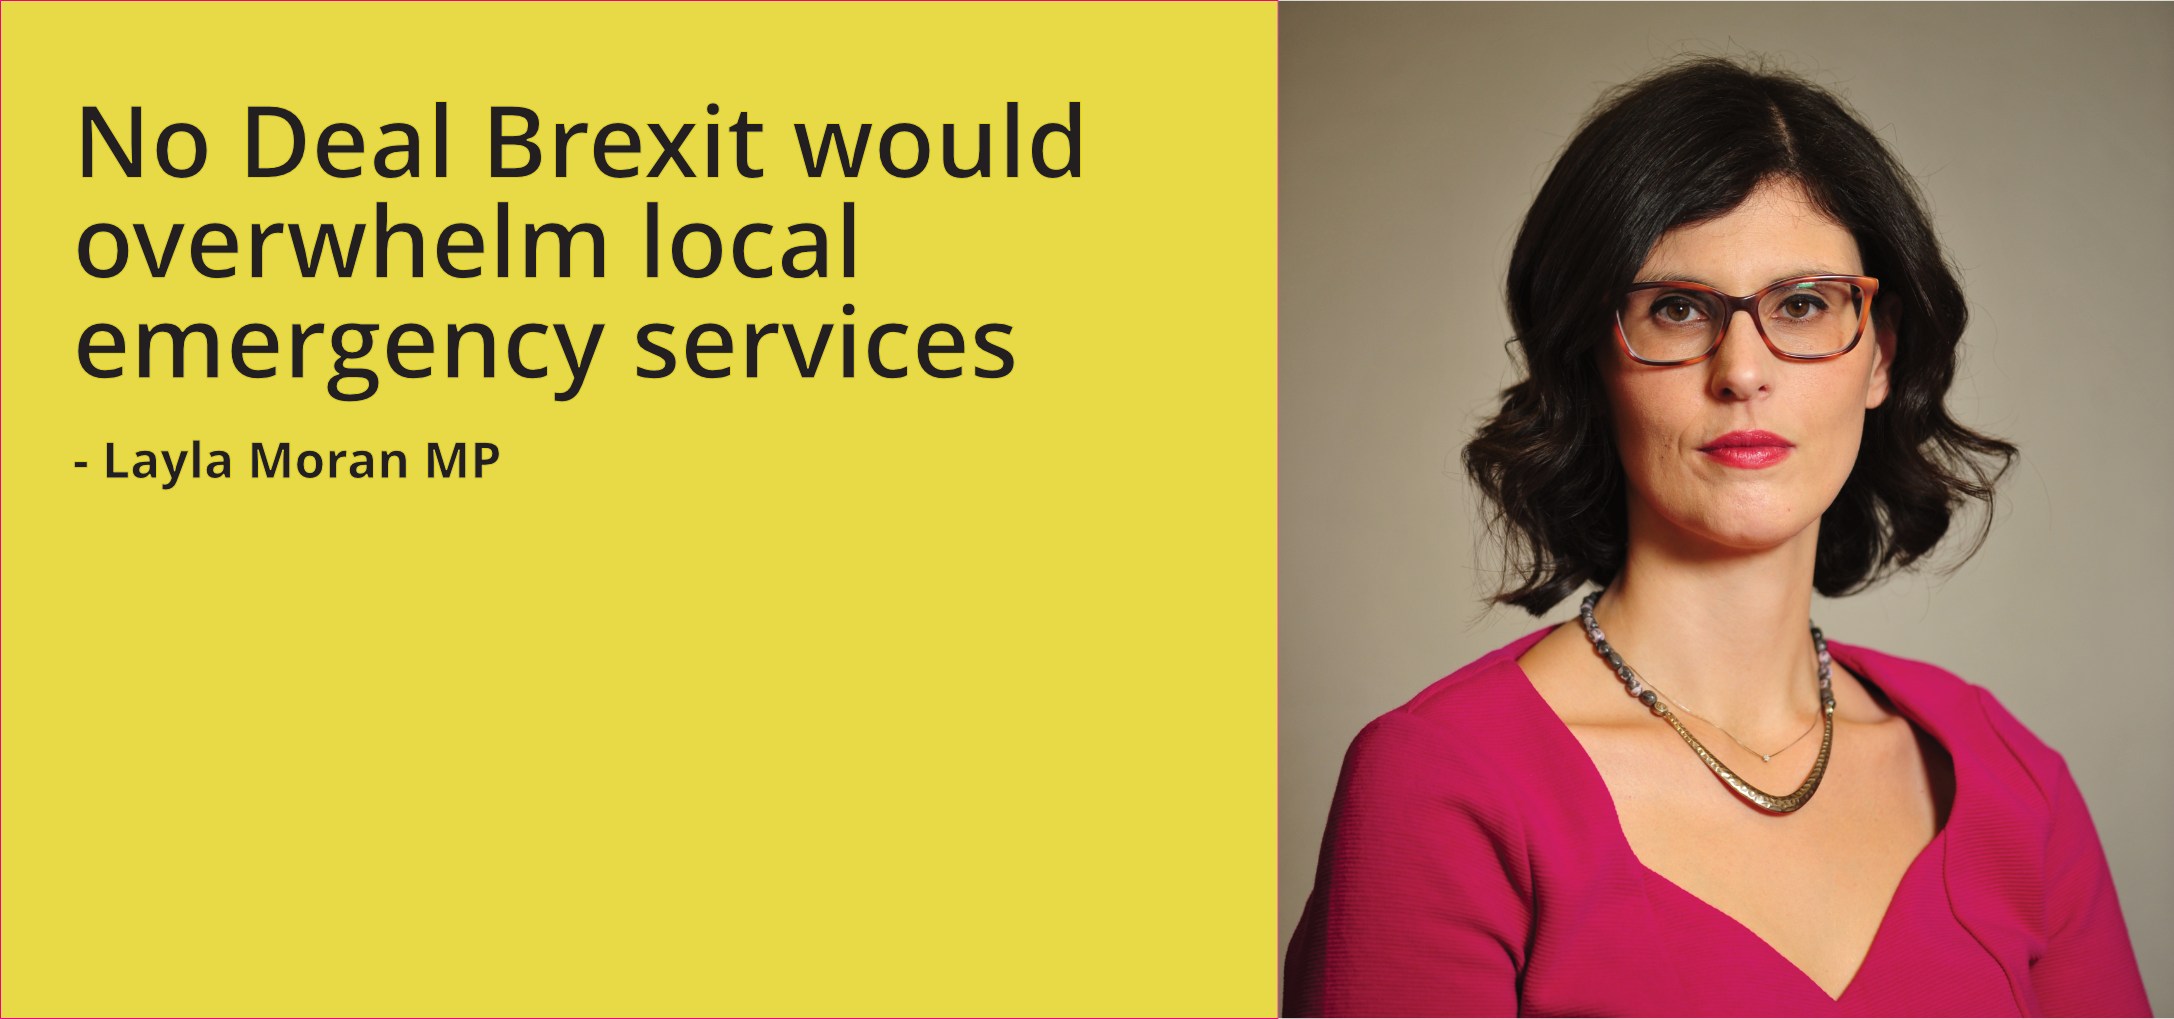 No Deal Brexit would overwhelm local emergency services